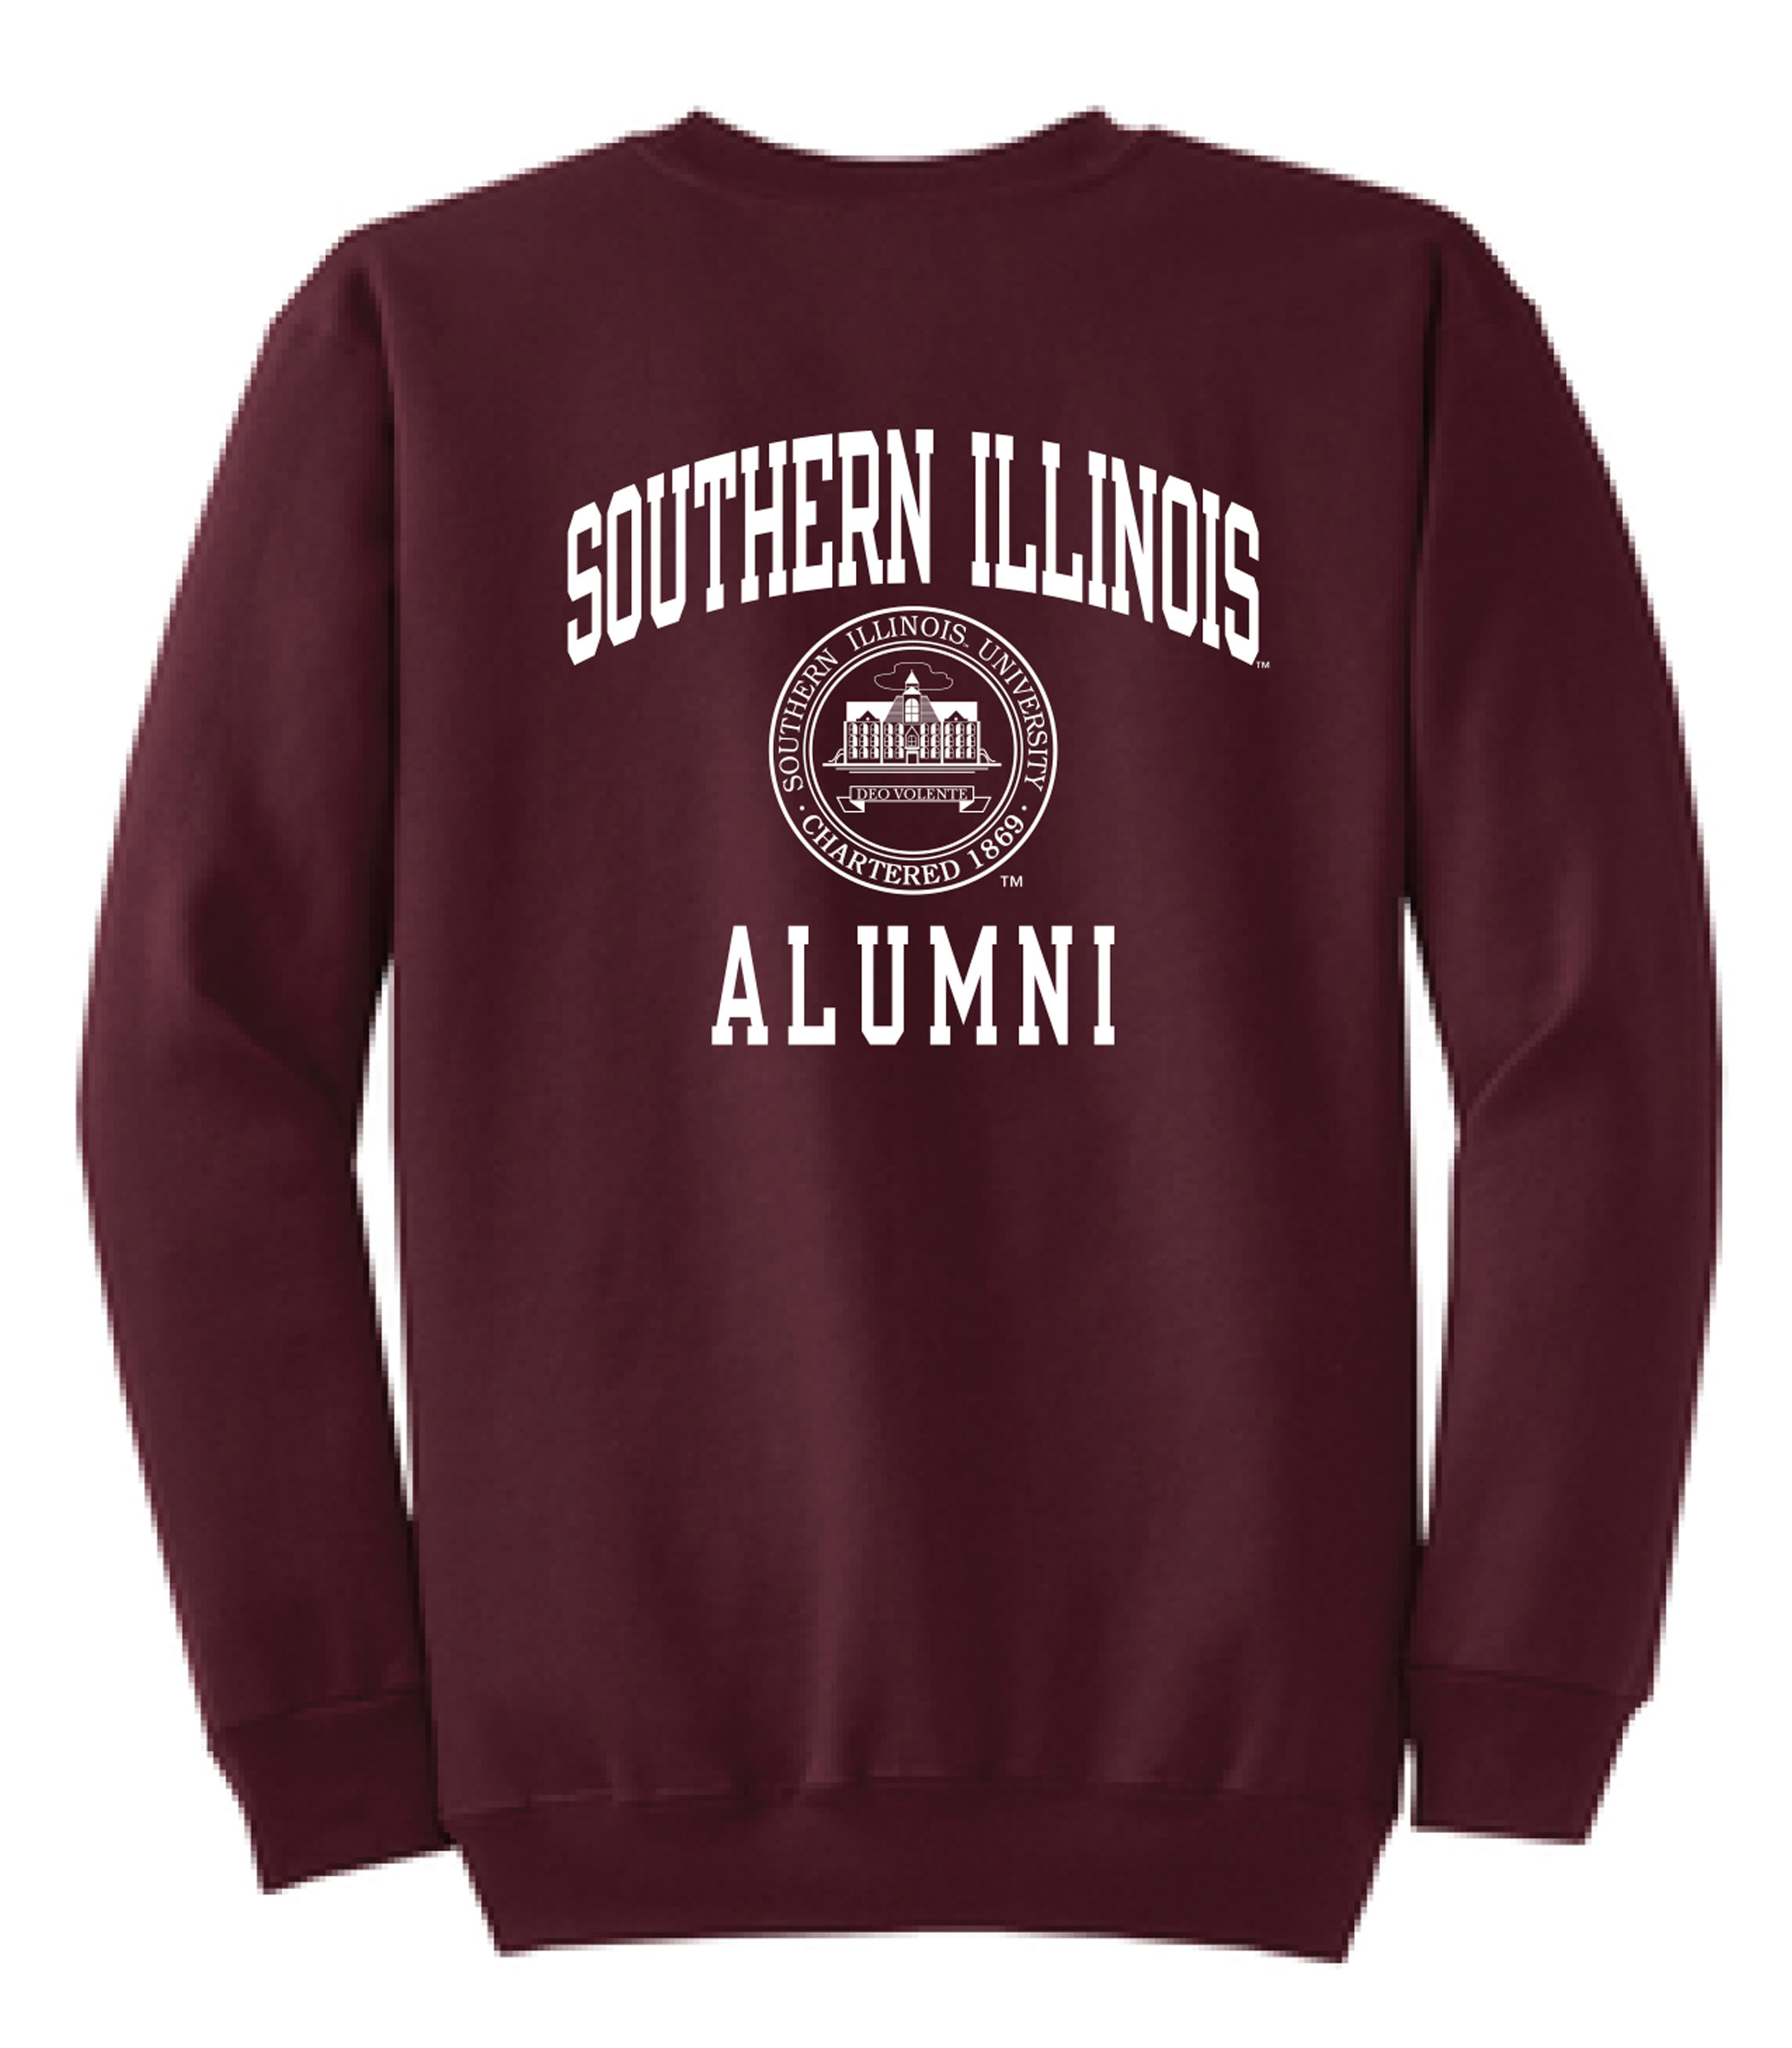 Image for the PROMO® MAROON SOUTHERN ILLINOIS ALUMNI SEAL CREW product